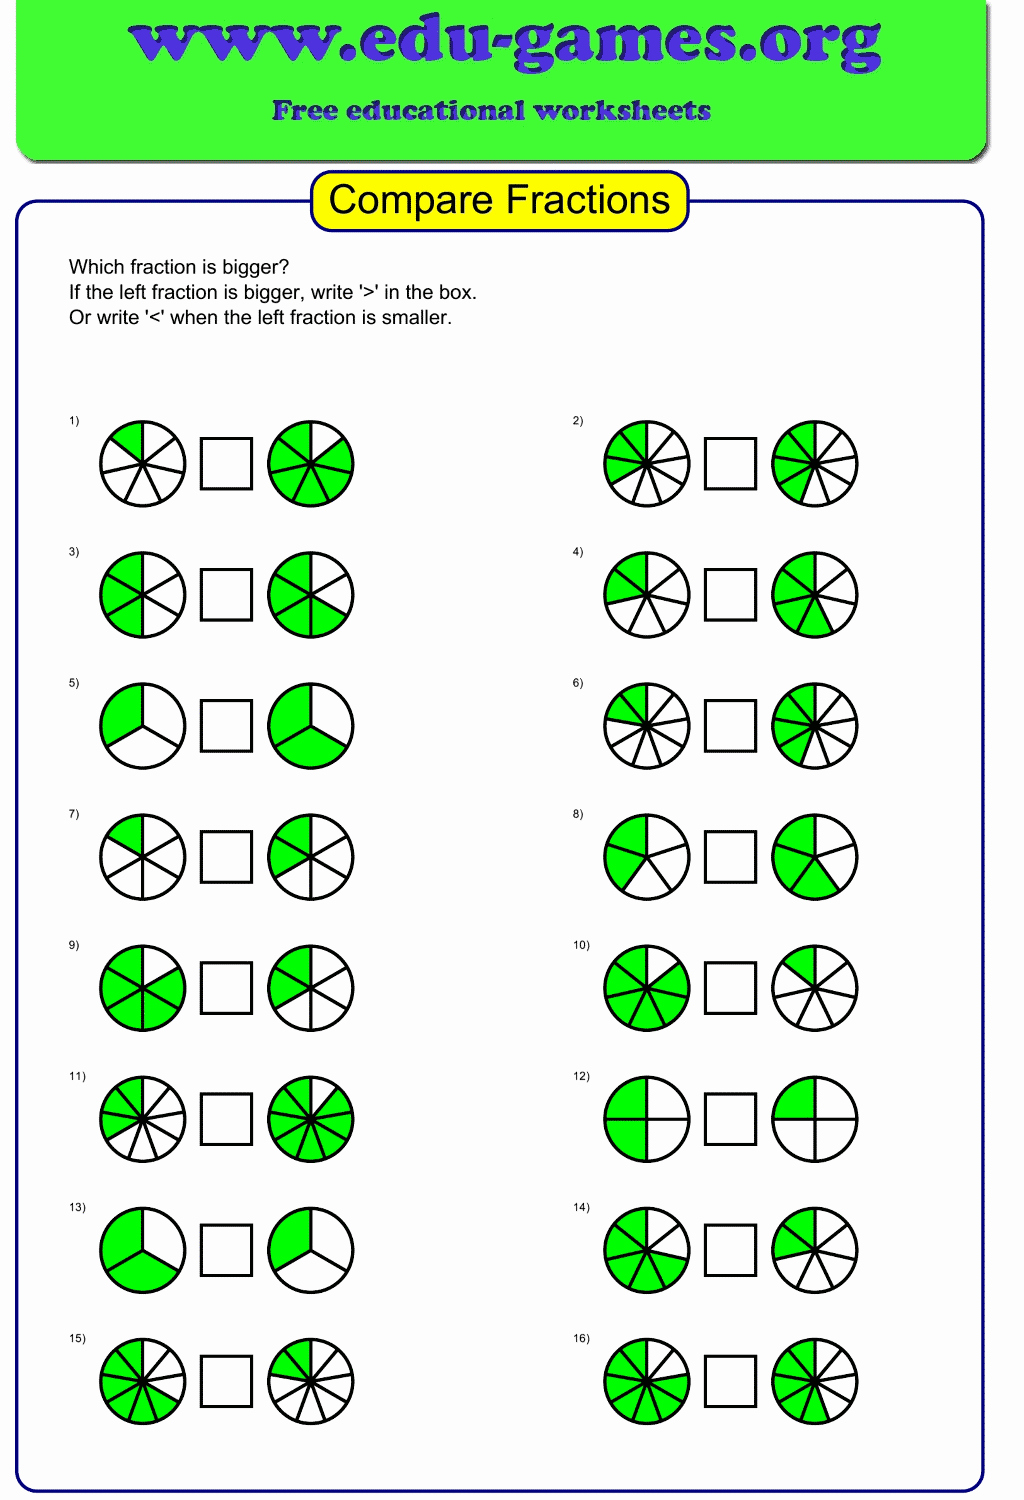 Free Printable Fraction Worksheets then Pare Graphical Fractions Worksheet